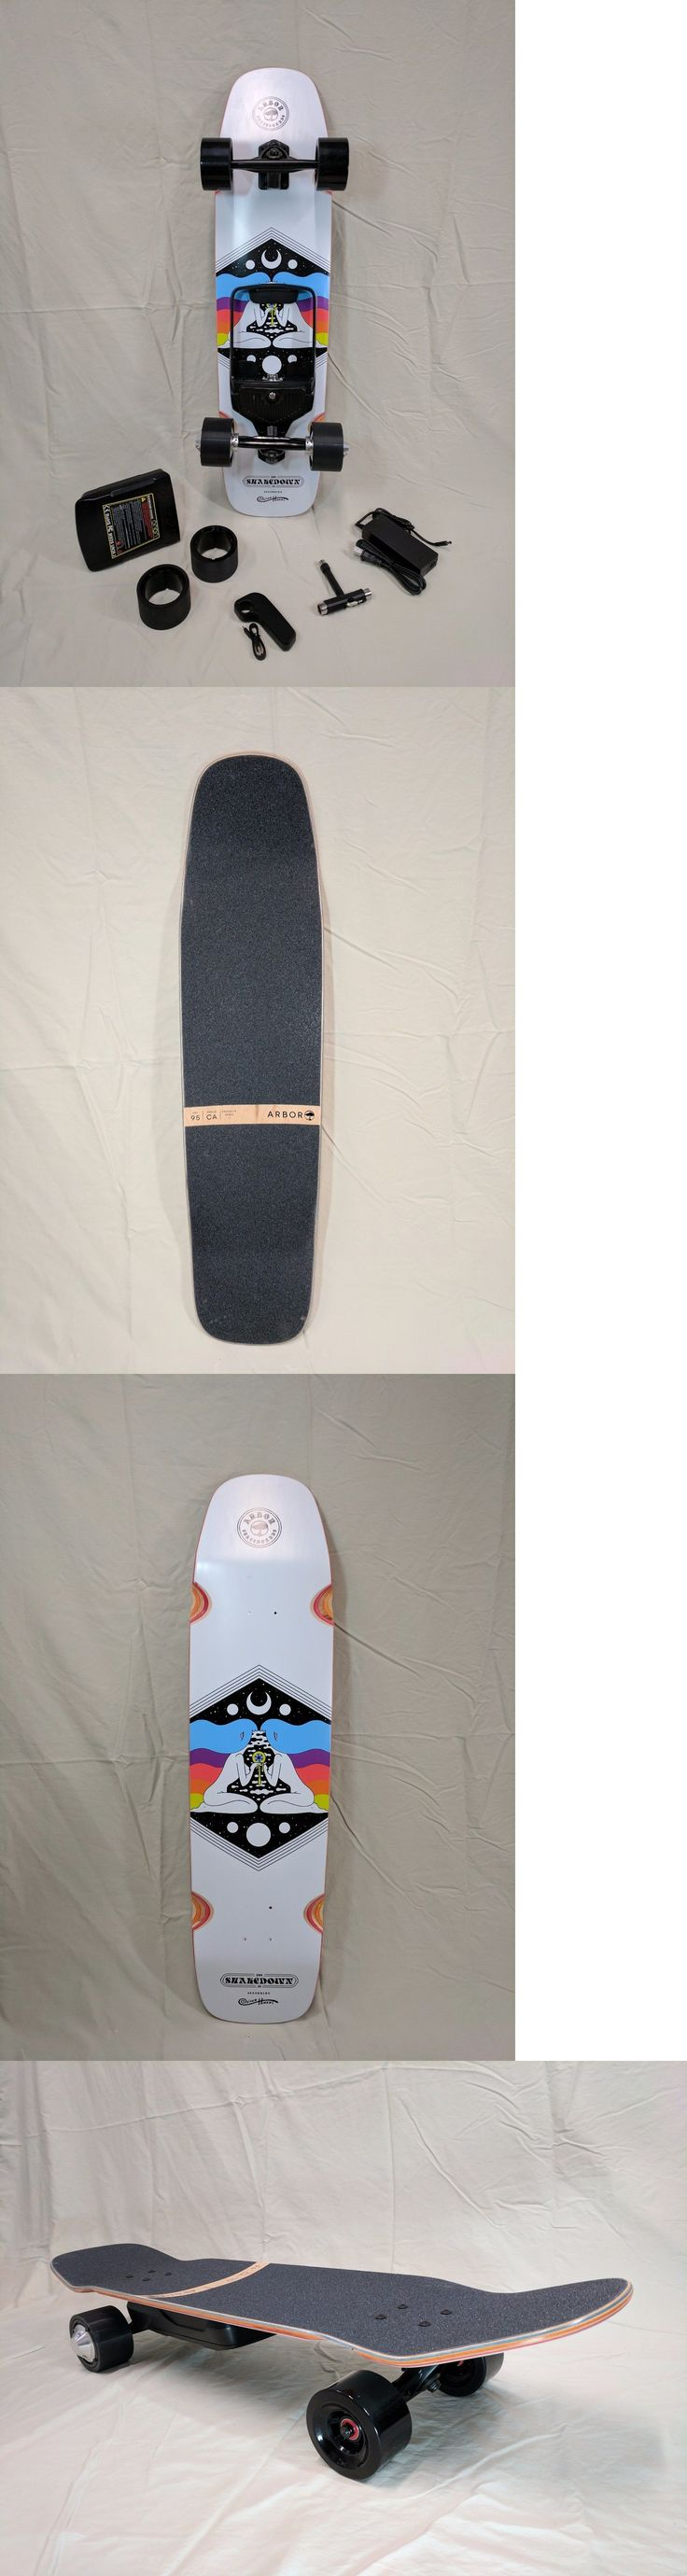 Other Skateboard Parts 159076: Onan X2 Booster Installed On A Arbor Shakedown Crosscut 37 Longboard Deck -> BUY IT NOW ONLY: $989 on eBay!